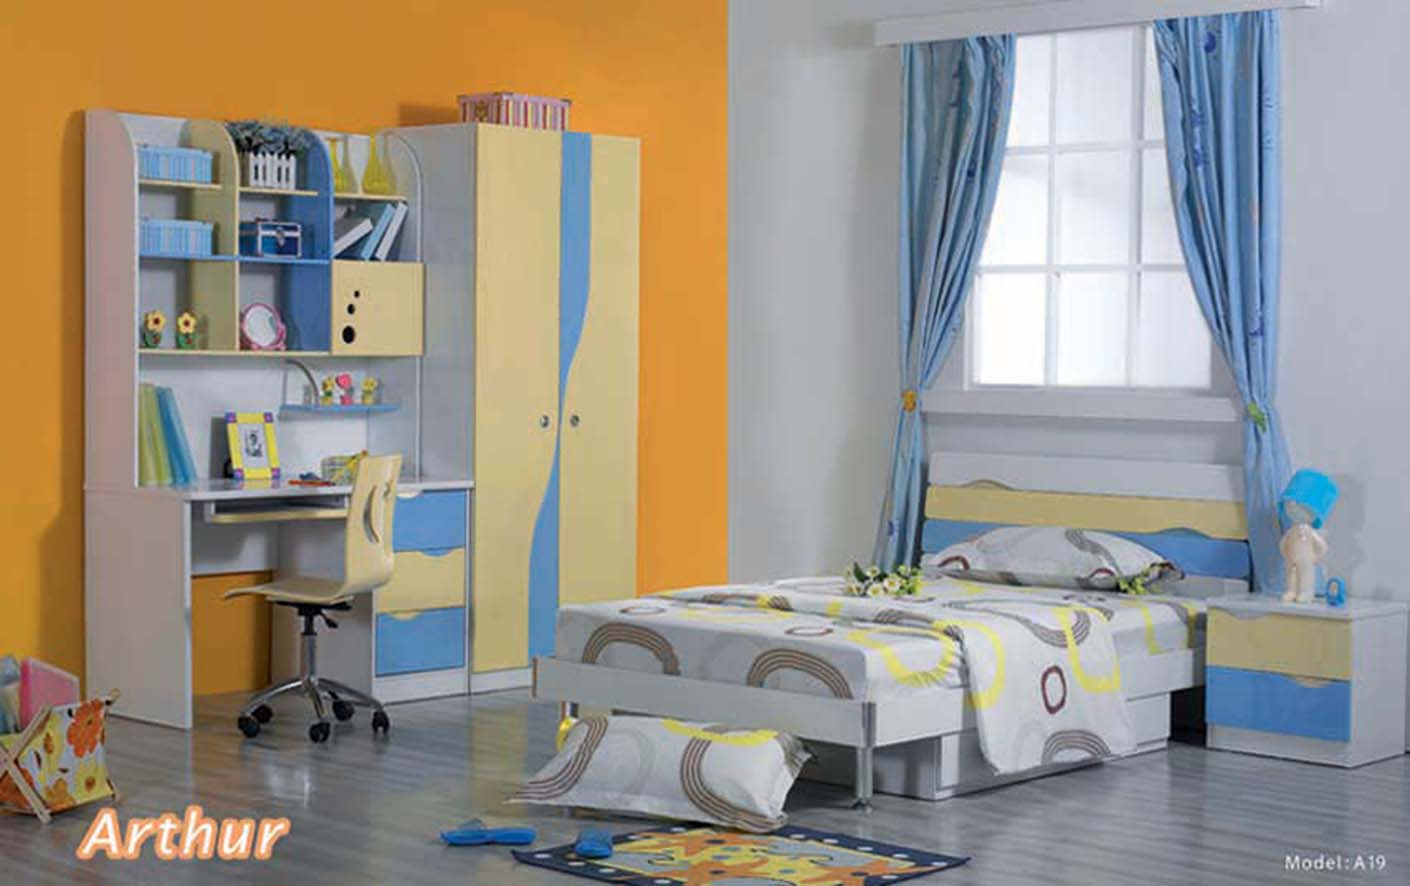 How to design a kids bedroom interior designing ideas - Kids bedroom ...